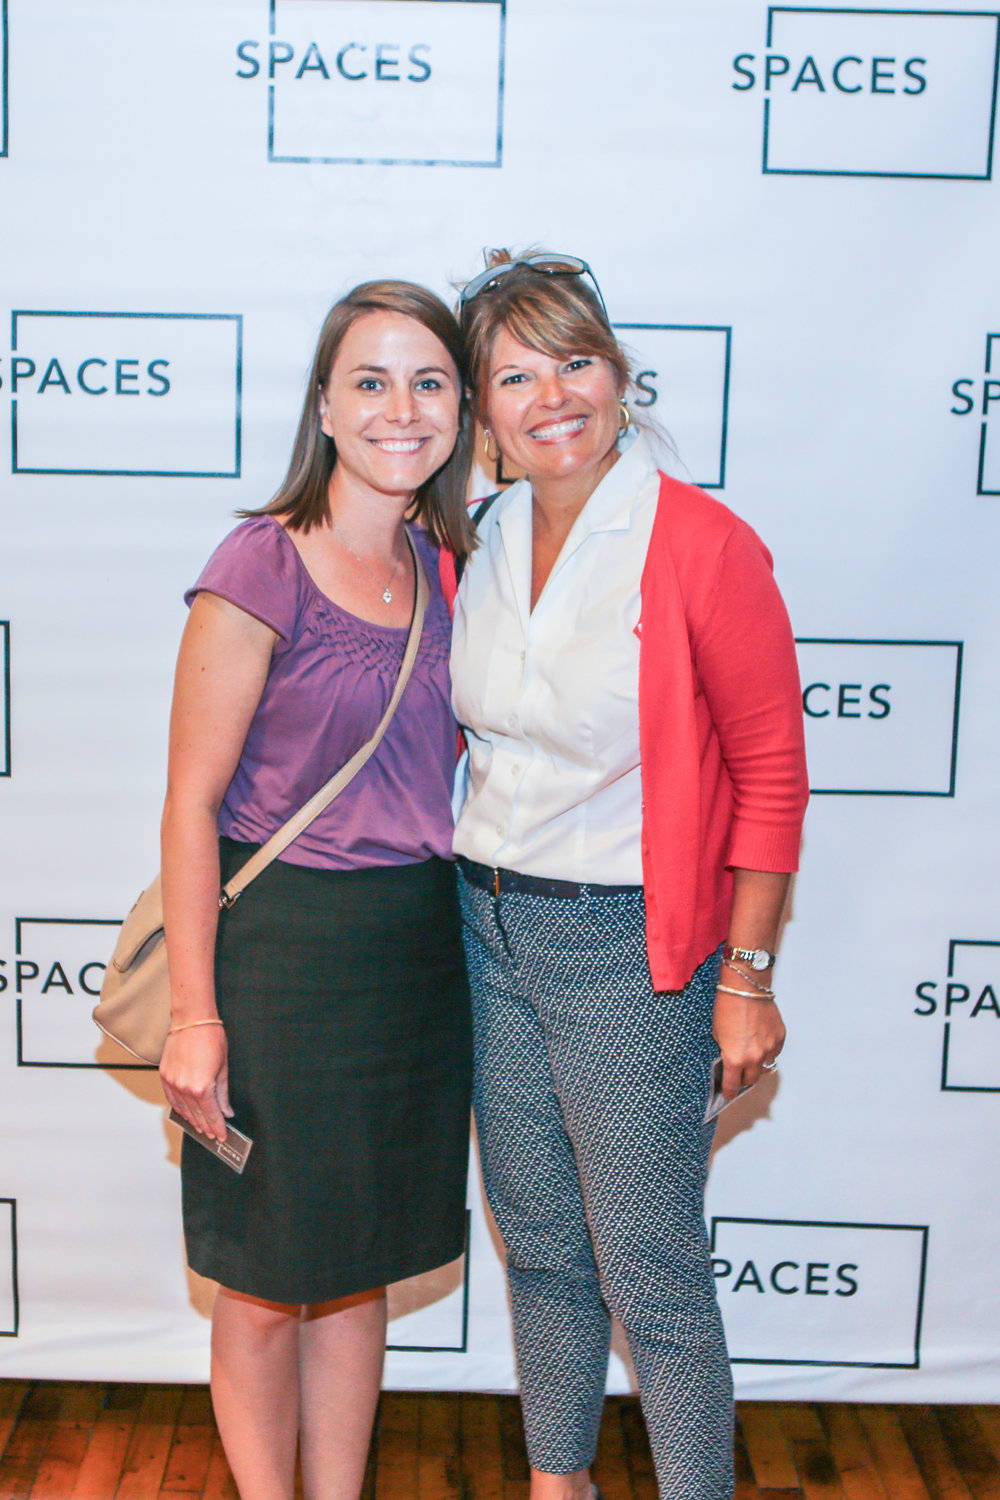 Spaces Event-1044.jpg